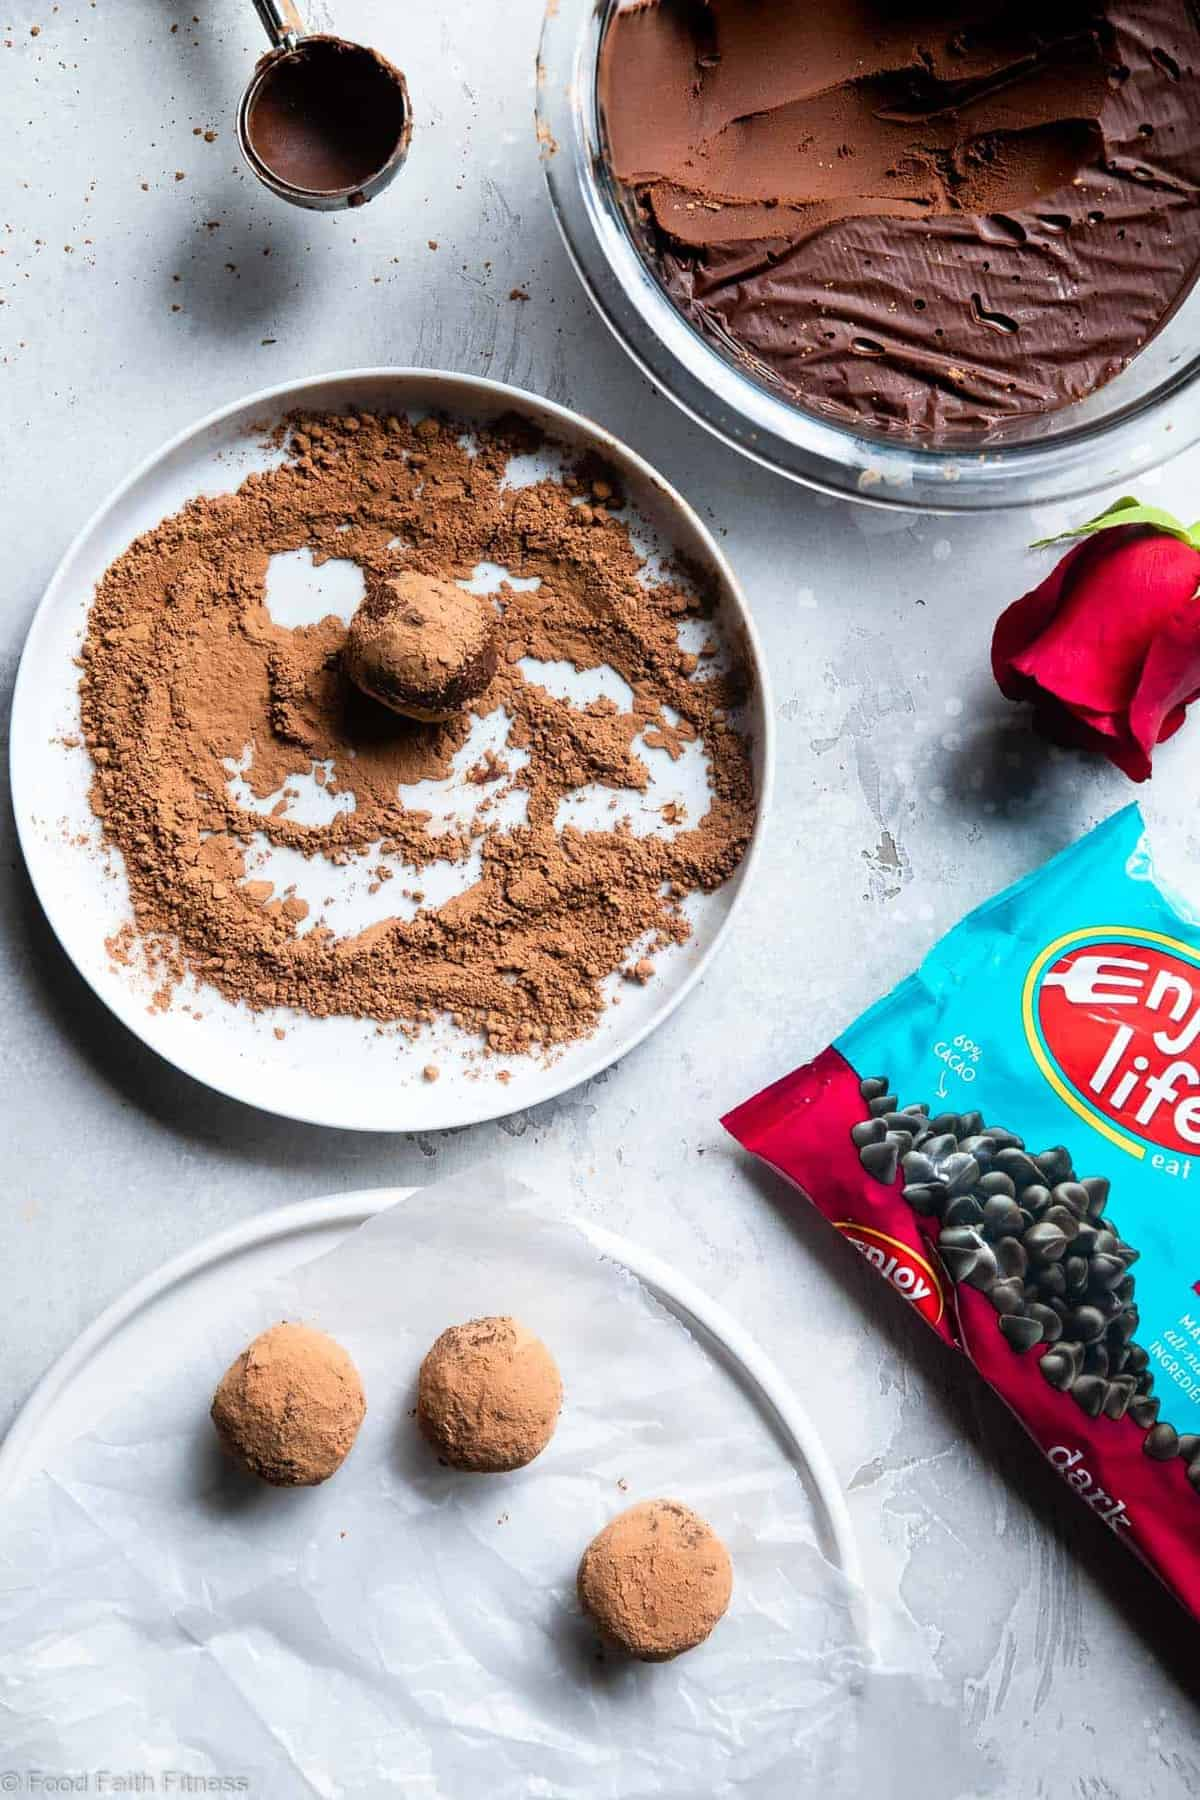 Dairy Free Vegan Truffle Recipe -These Homemade ChocolateTruffles are only 3 ingredients and are SO easy to make! So creamy you won't know they're gluten, grain and dairy free, paleo friendly and healthier! | #Foodfaithfitness |